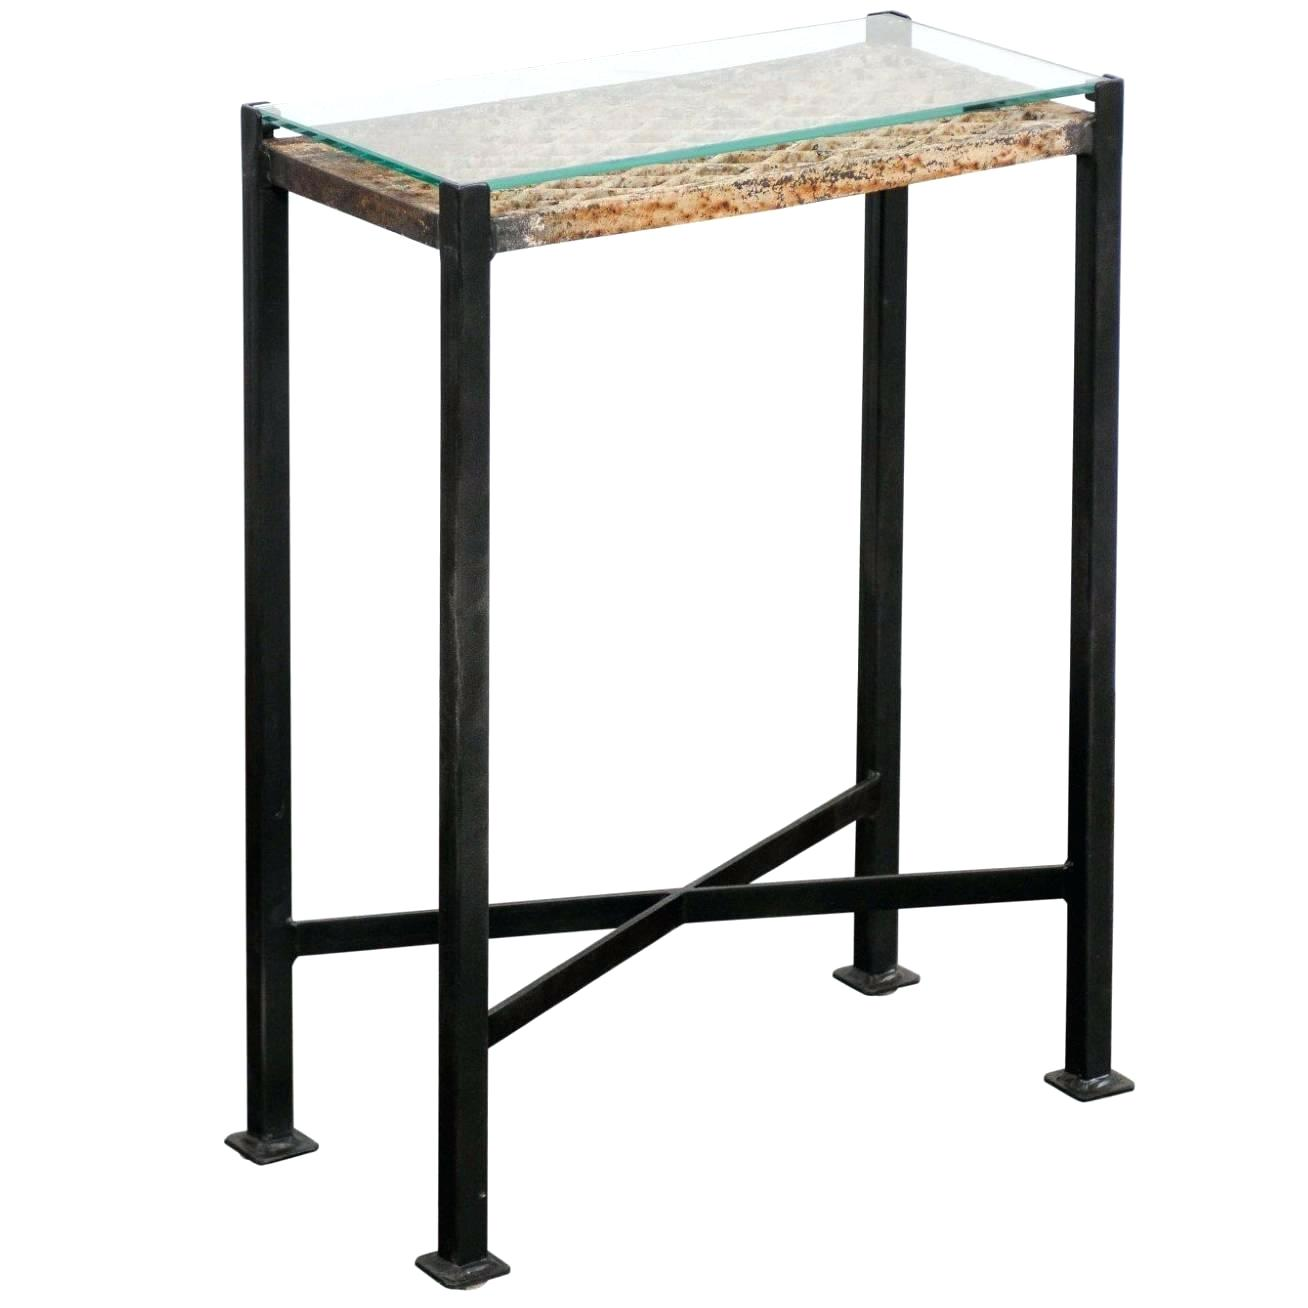 folding low drink table small accent tables bobmervak made from french decorative iron panel custom base round side turquoise console cloth tablecloths stained glass pendant light